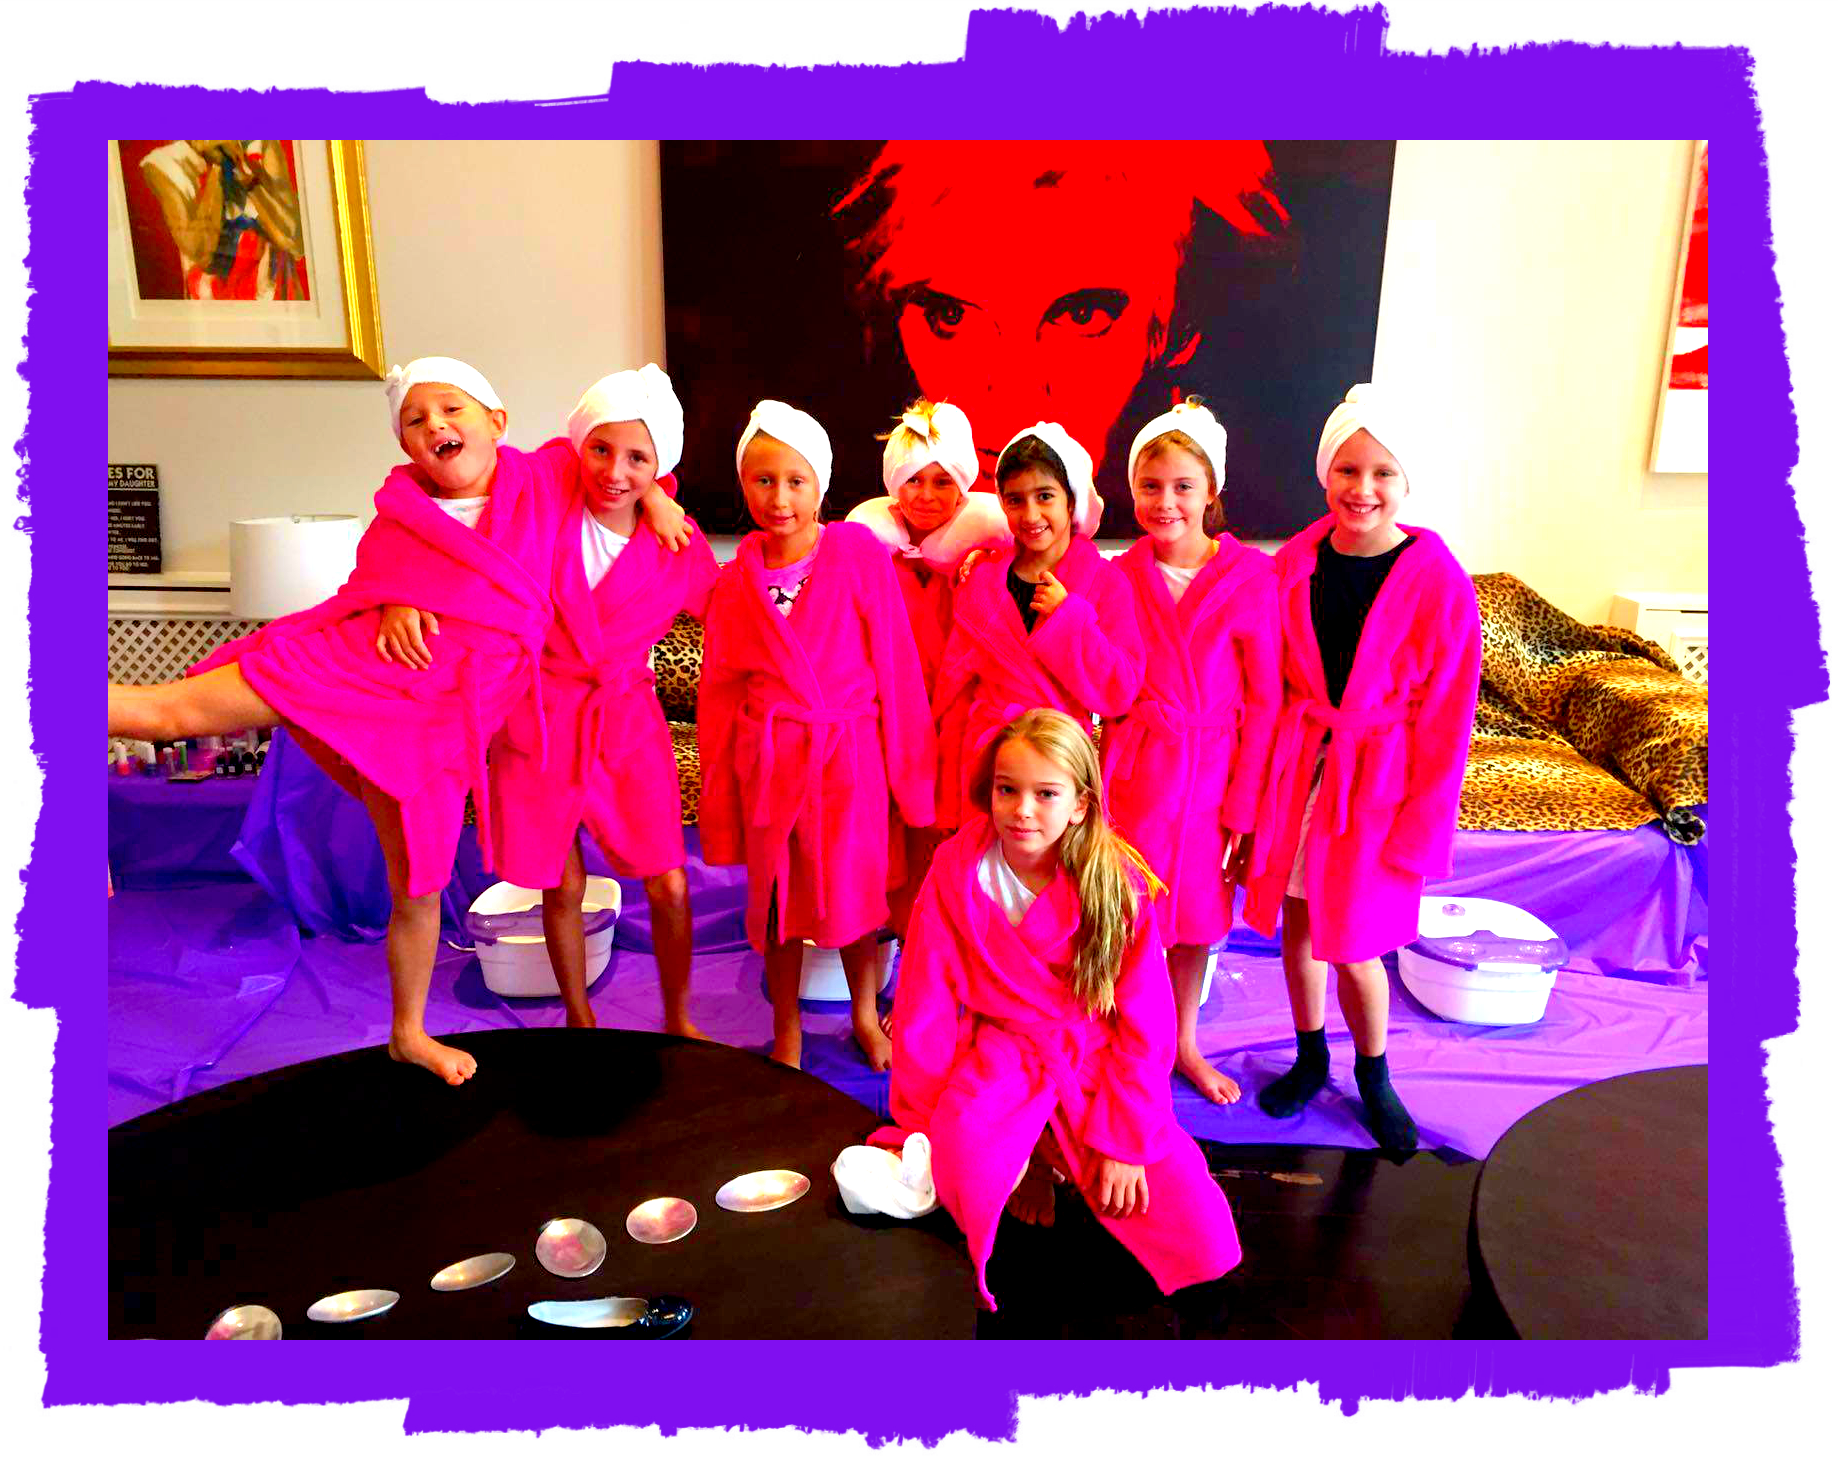 Kids Spa Parties Teen Spa Party Childrens Spa Parties London UK - Childrens birthday party ideas in london